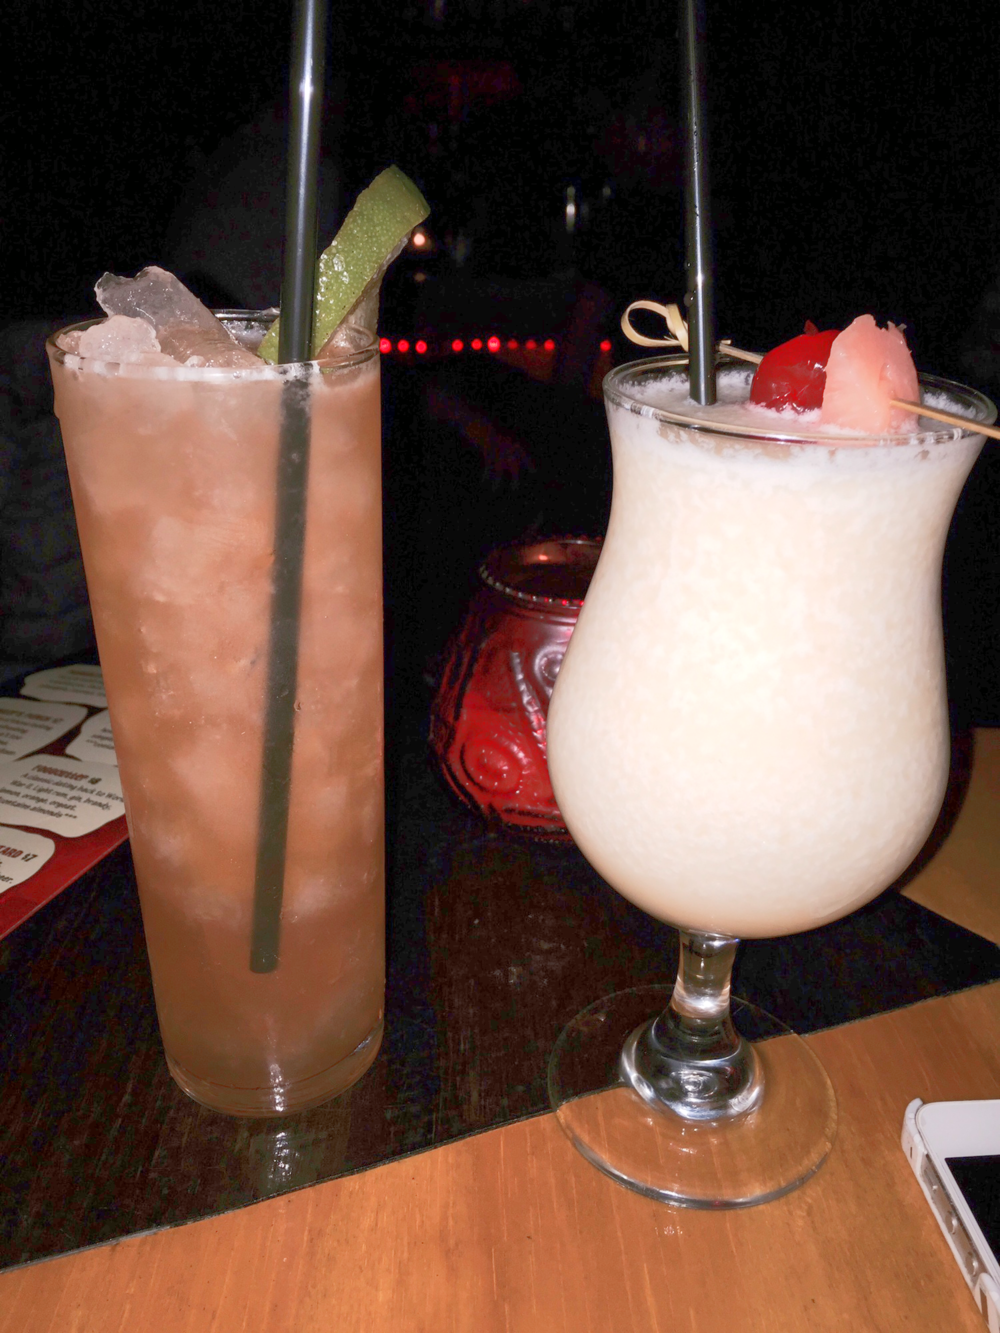 On the left, the Zombie Joe -- a drink so boozy, patrons are limited to one each. On the right, my favorite beverage on the menu: Honey I Caught Coladas.